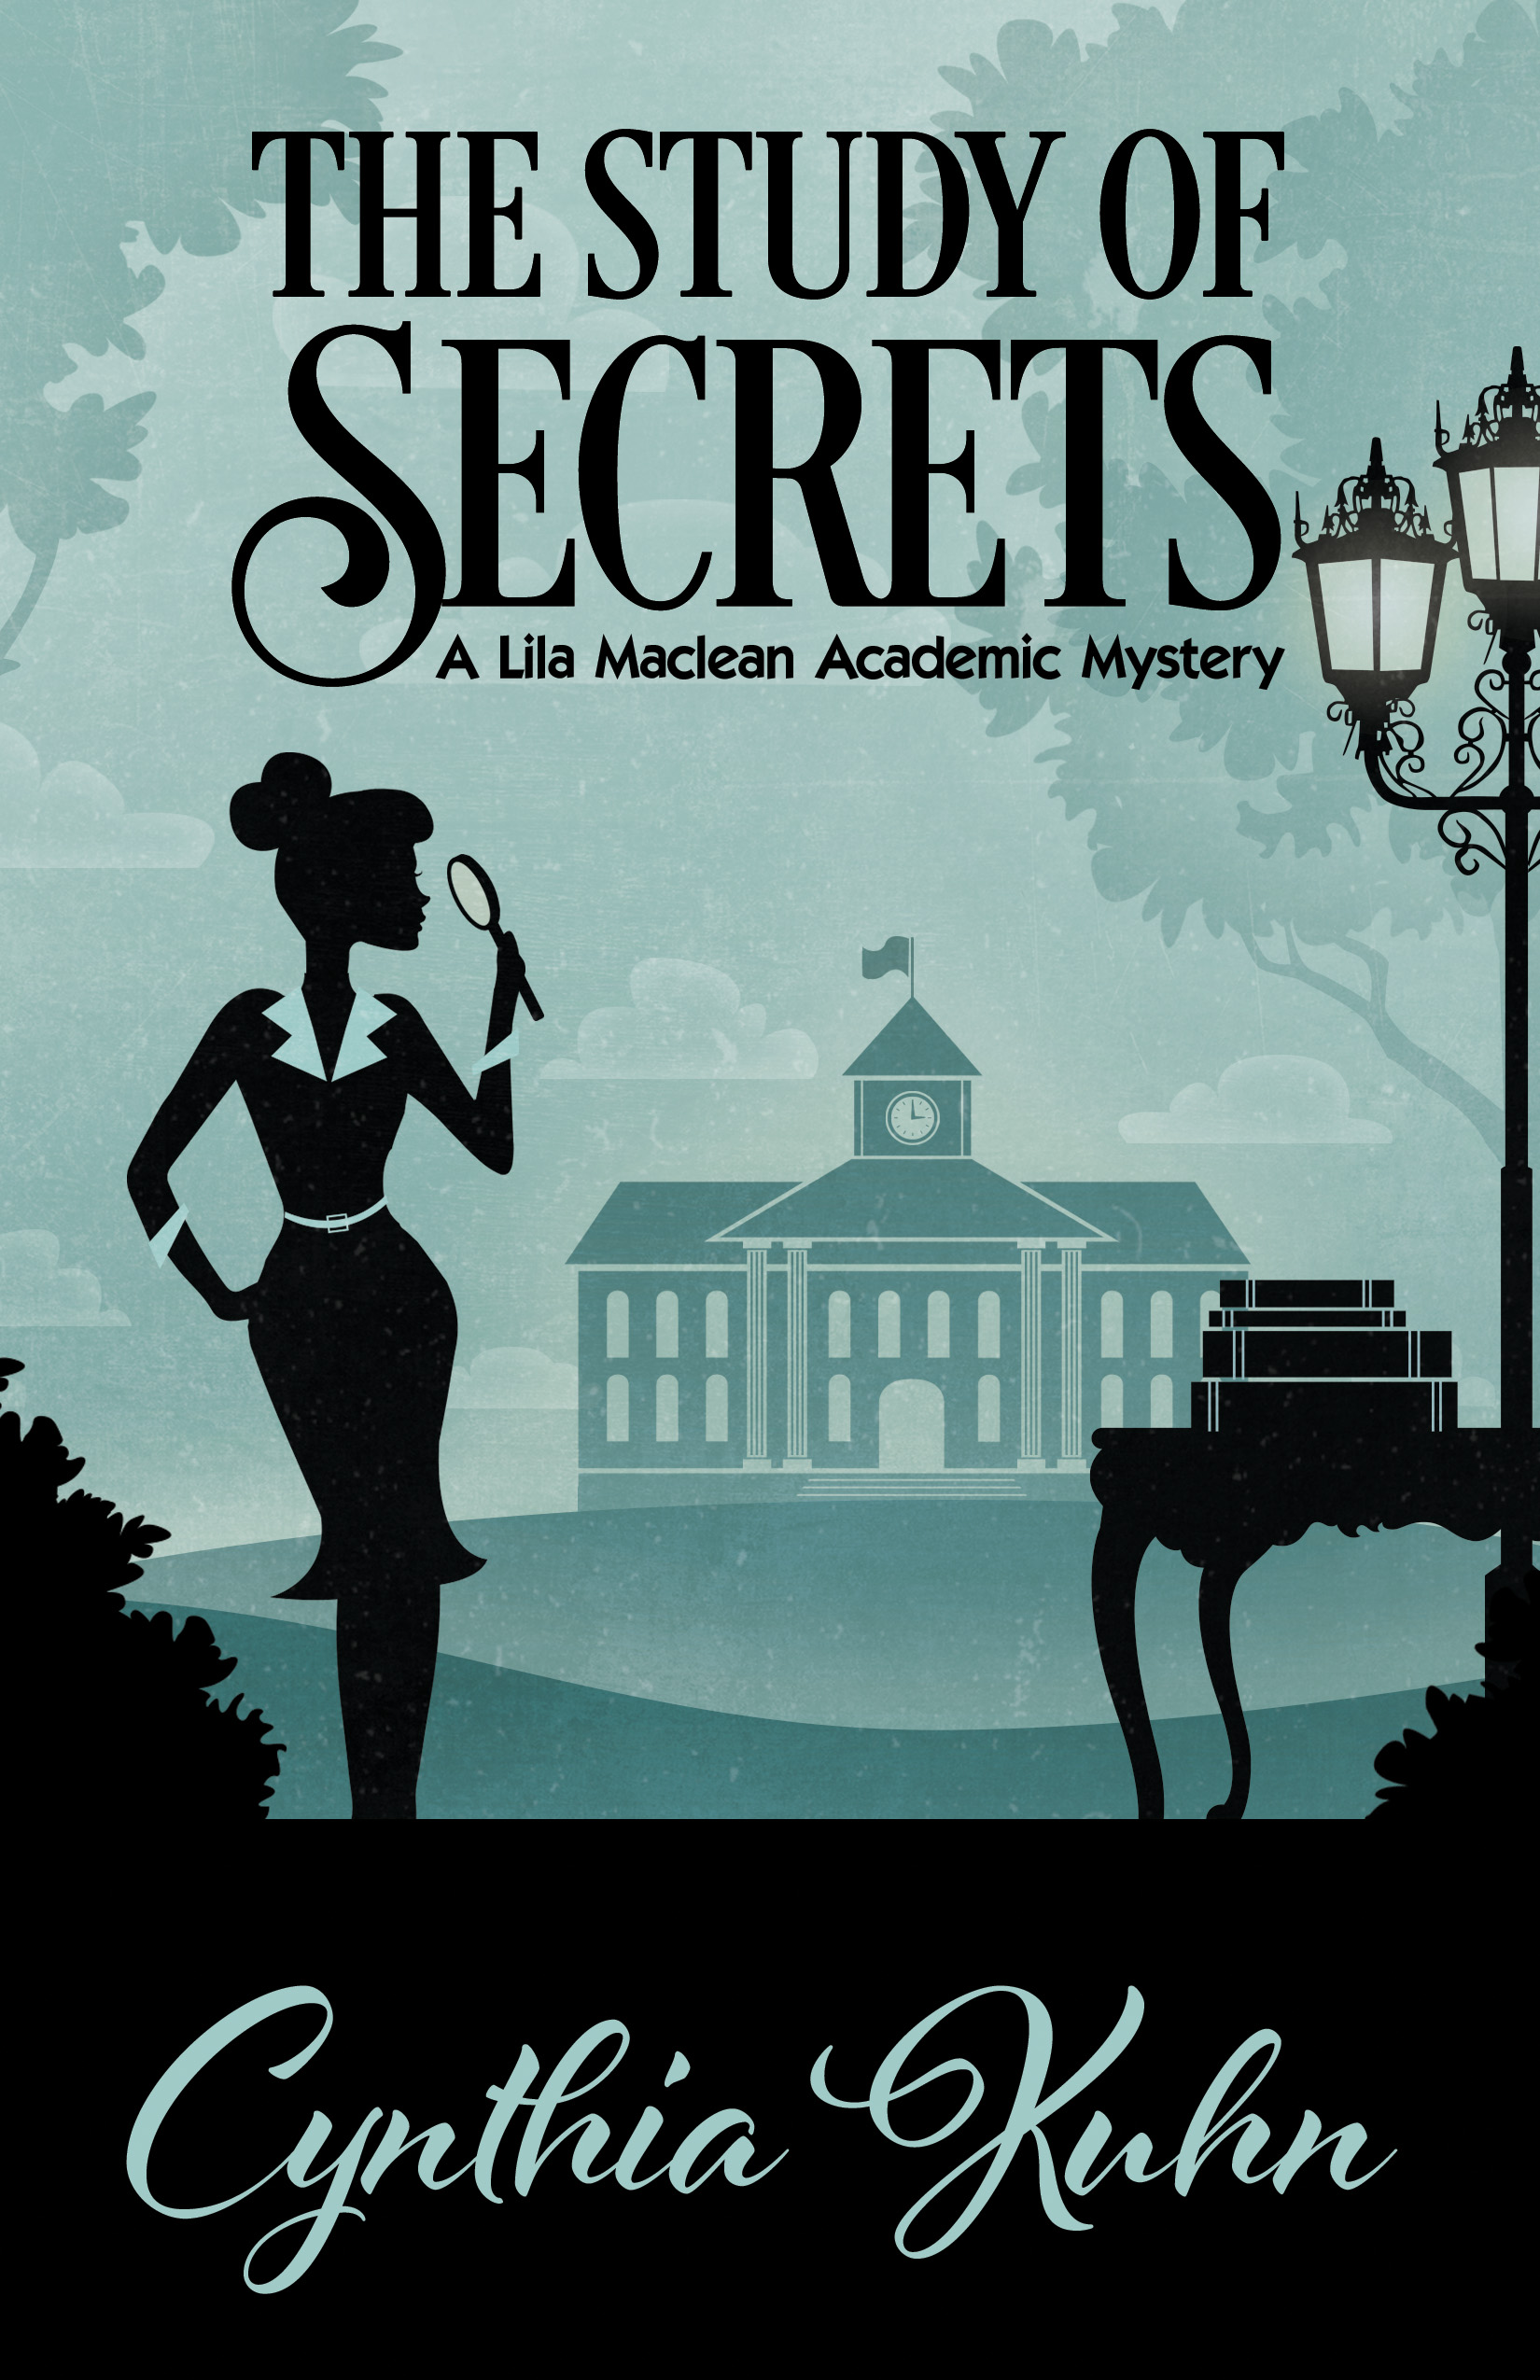 The Study of Secrets (Lila Maclean Academic Mystery #5)